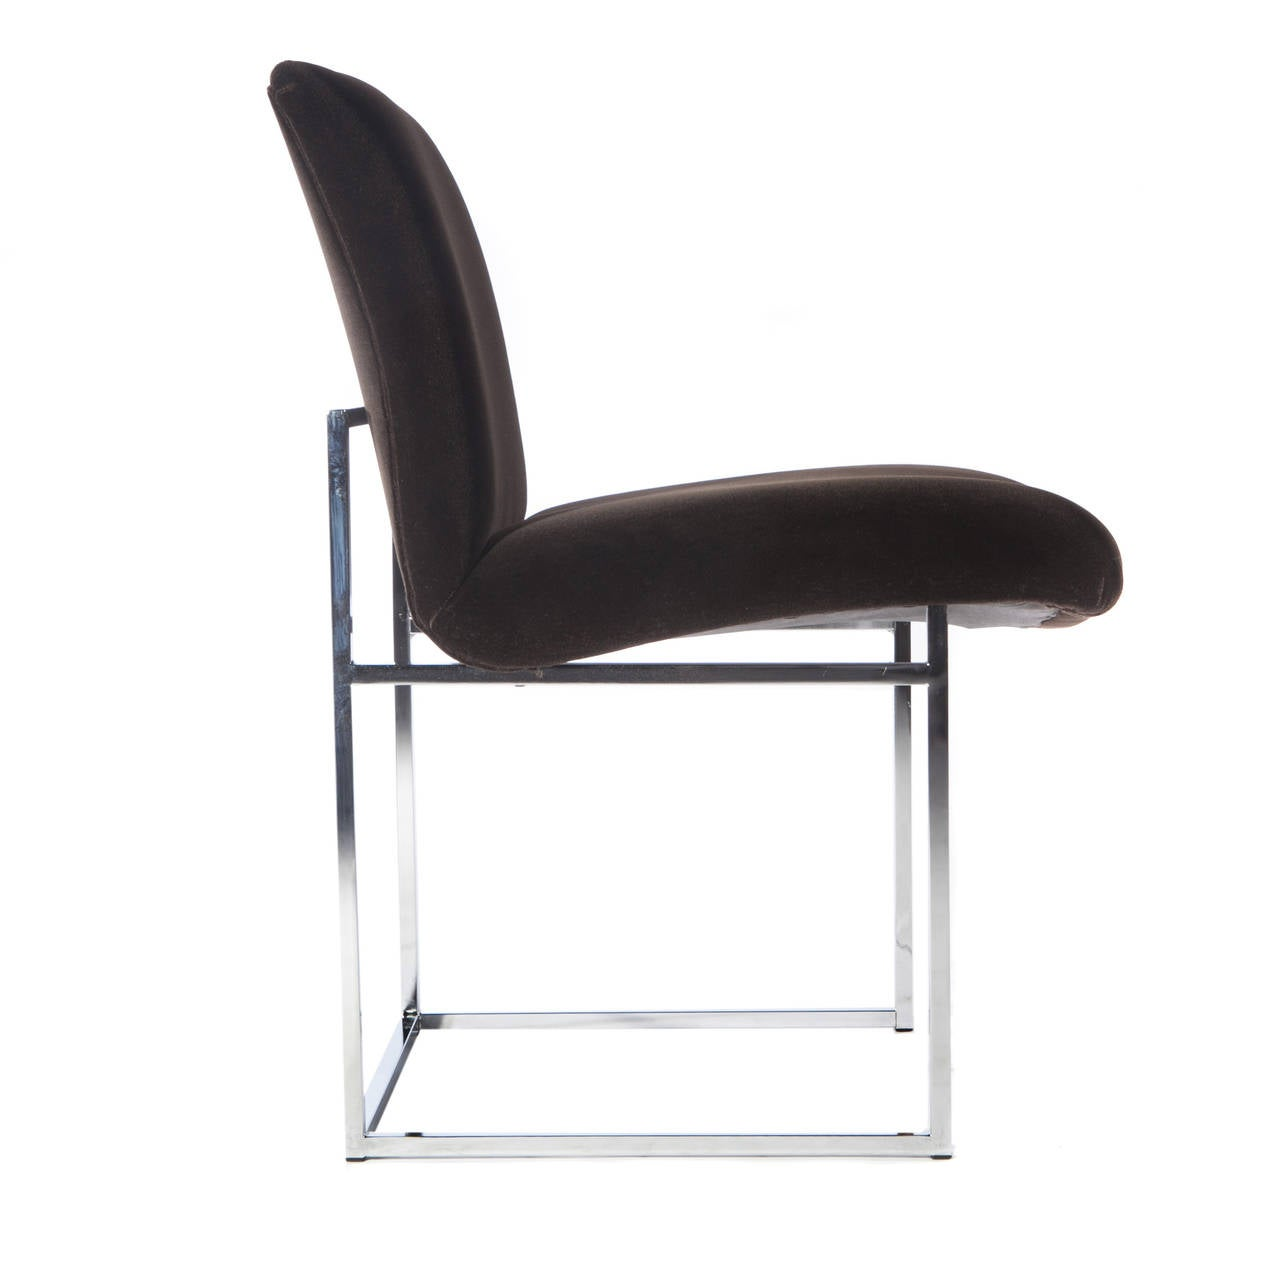 Set of Four Chrome and Mohair Dining Chairs by Milo Baughman, Circa 1970s In Excellent Condition For Sale In Brooklyn, NY